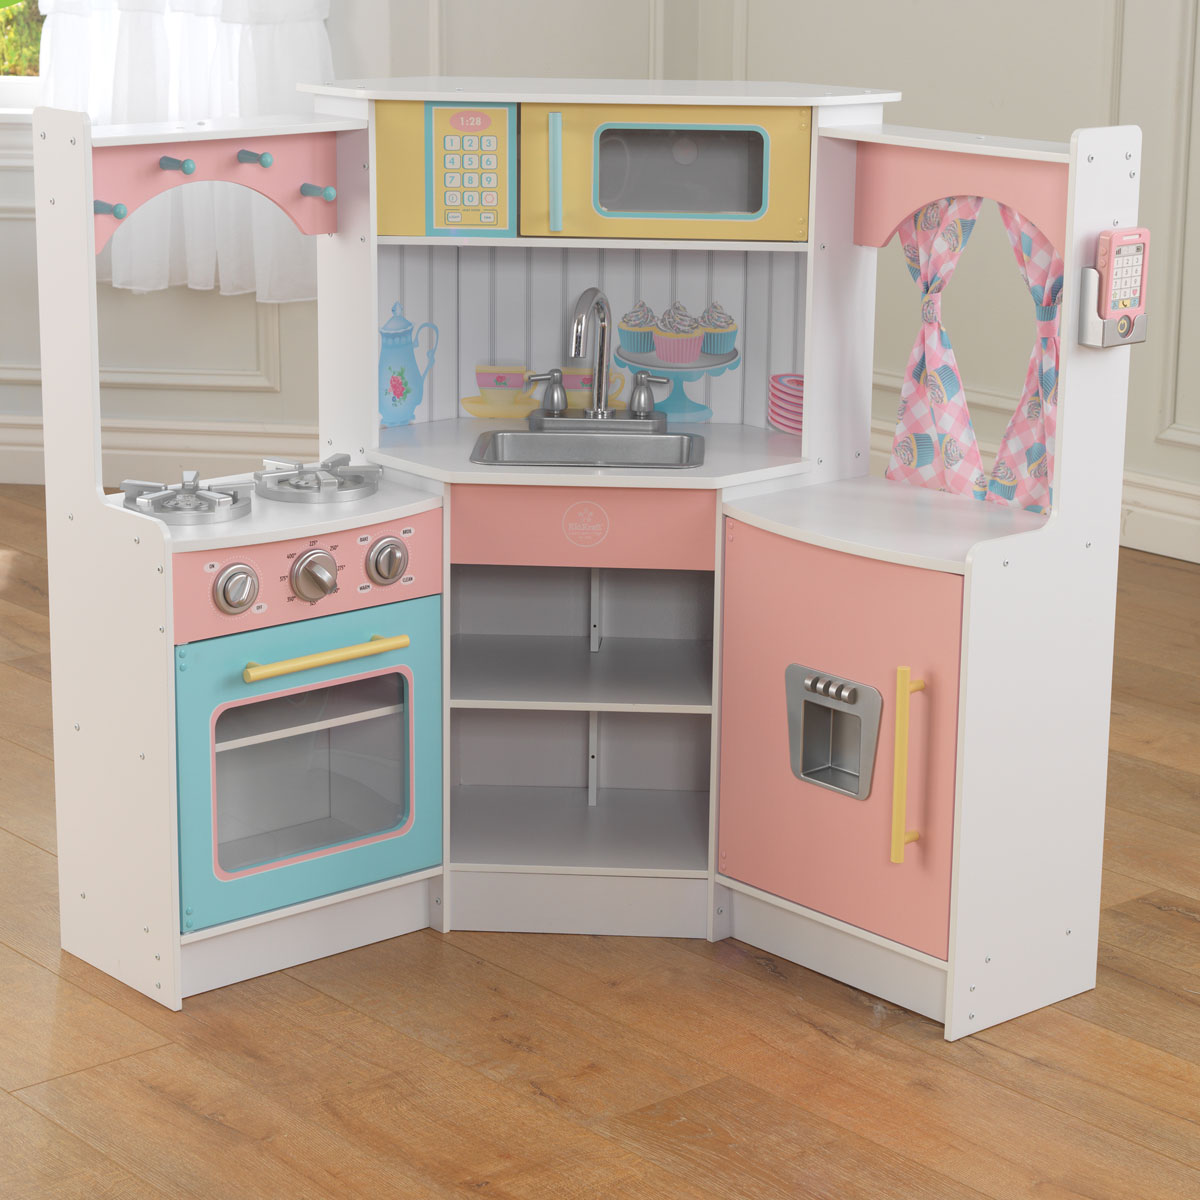 Kidkraft deluxe corner play kitchen 53368 pirum for Kitchen kitchen